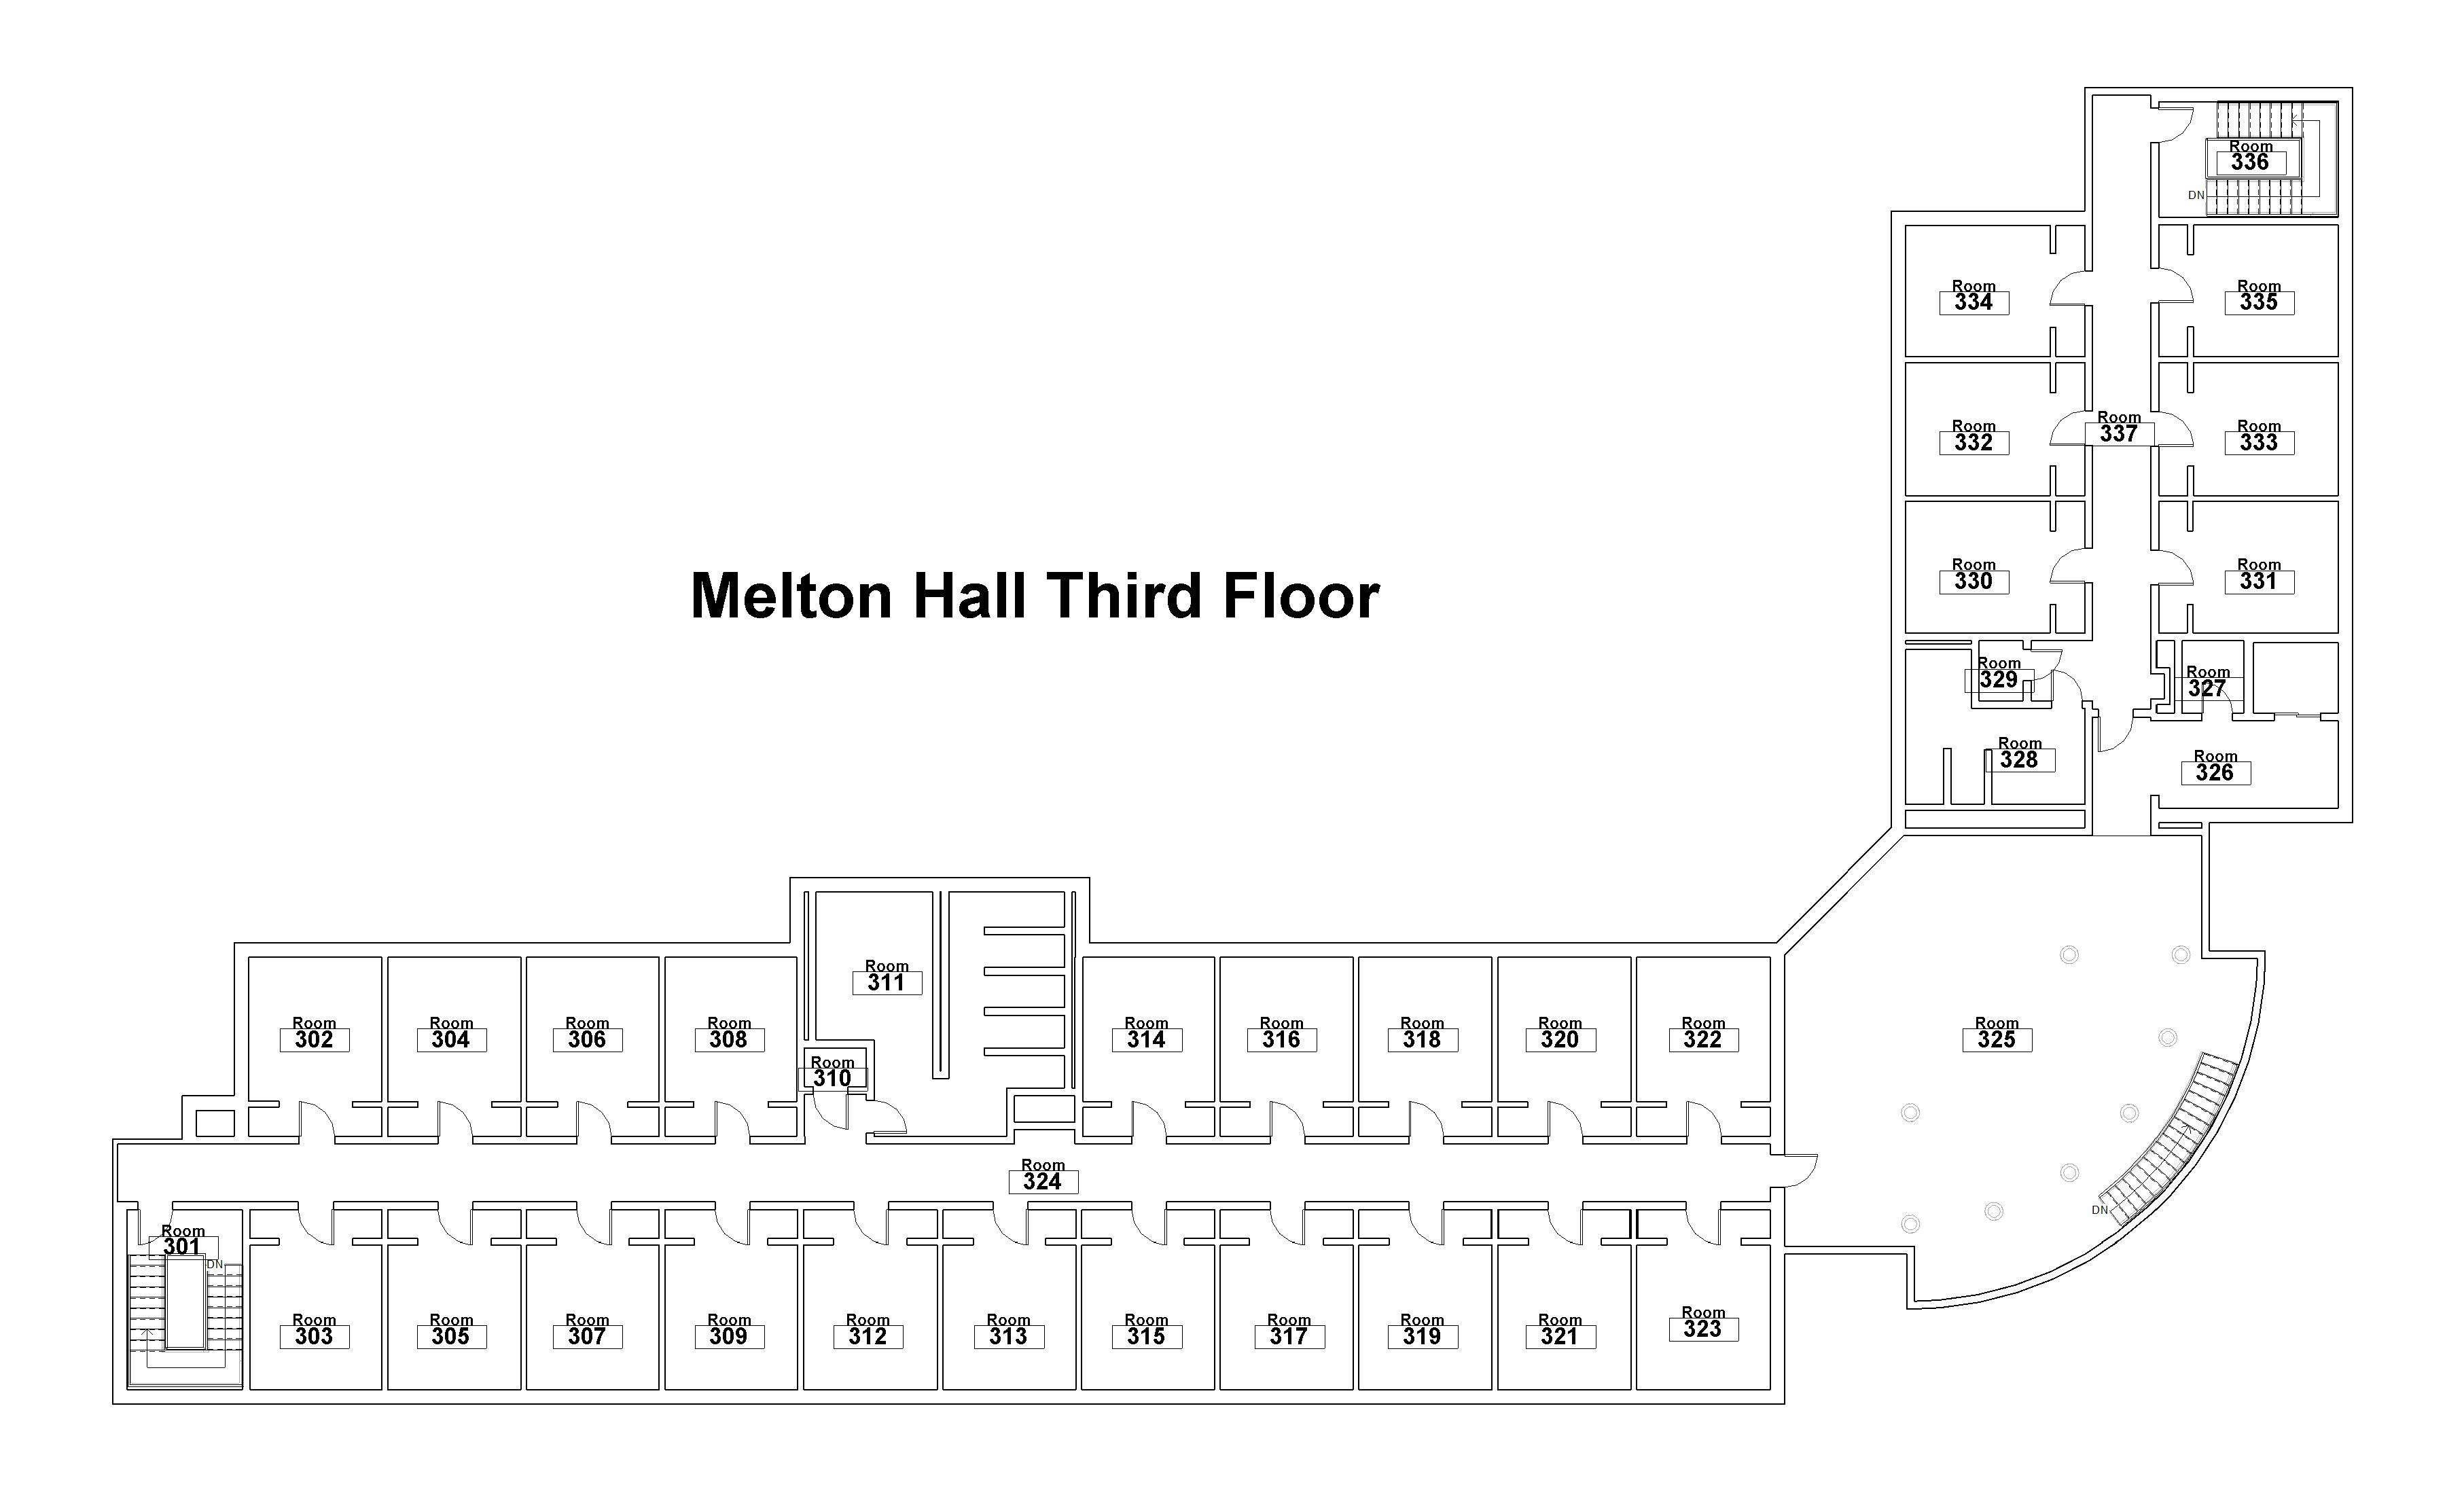 building-floorplan-melton-hall-floor-three